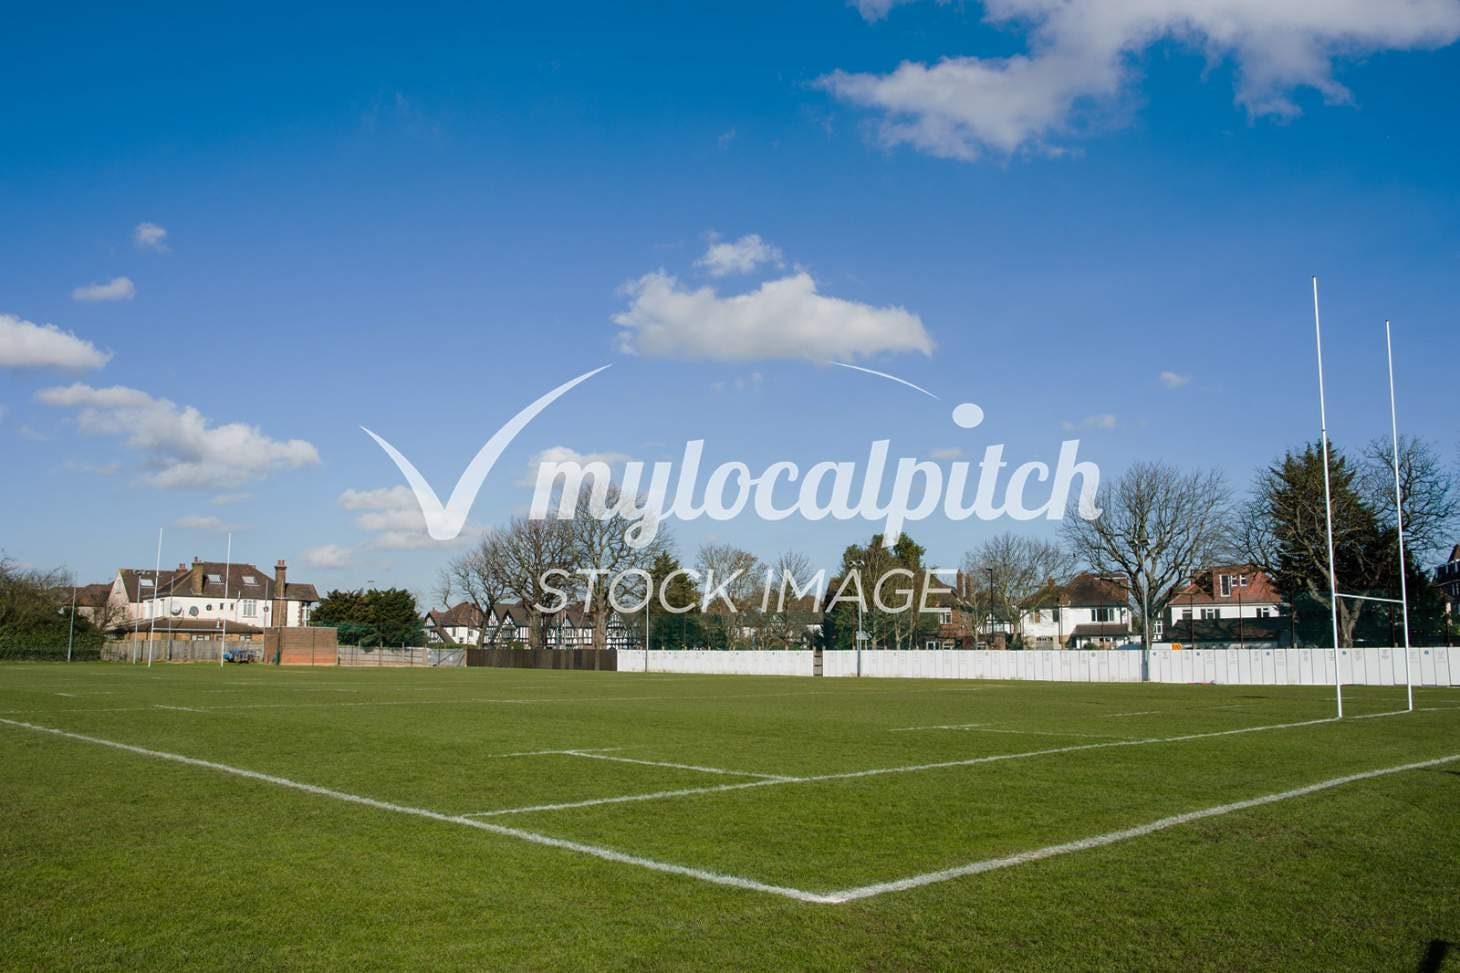 Chalfonts Community College Union | Astroturf rugby pitch